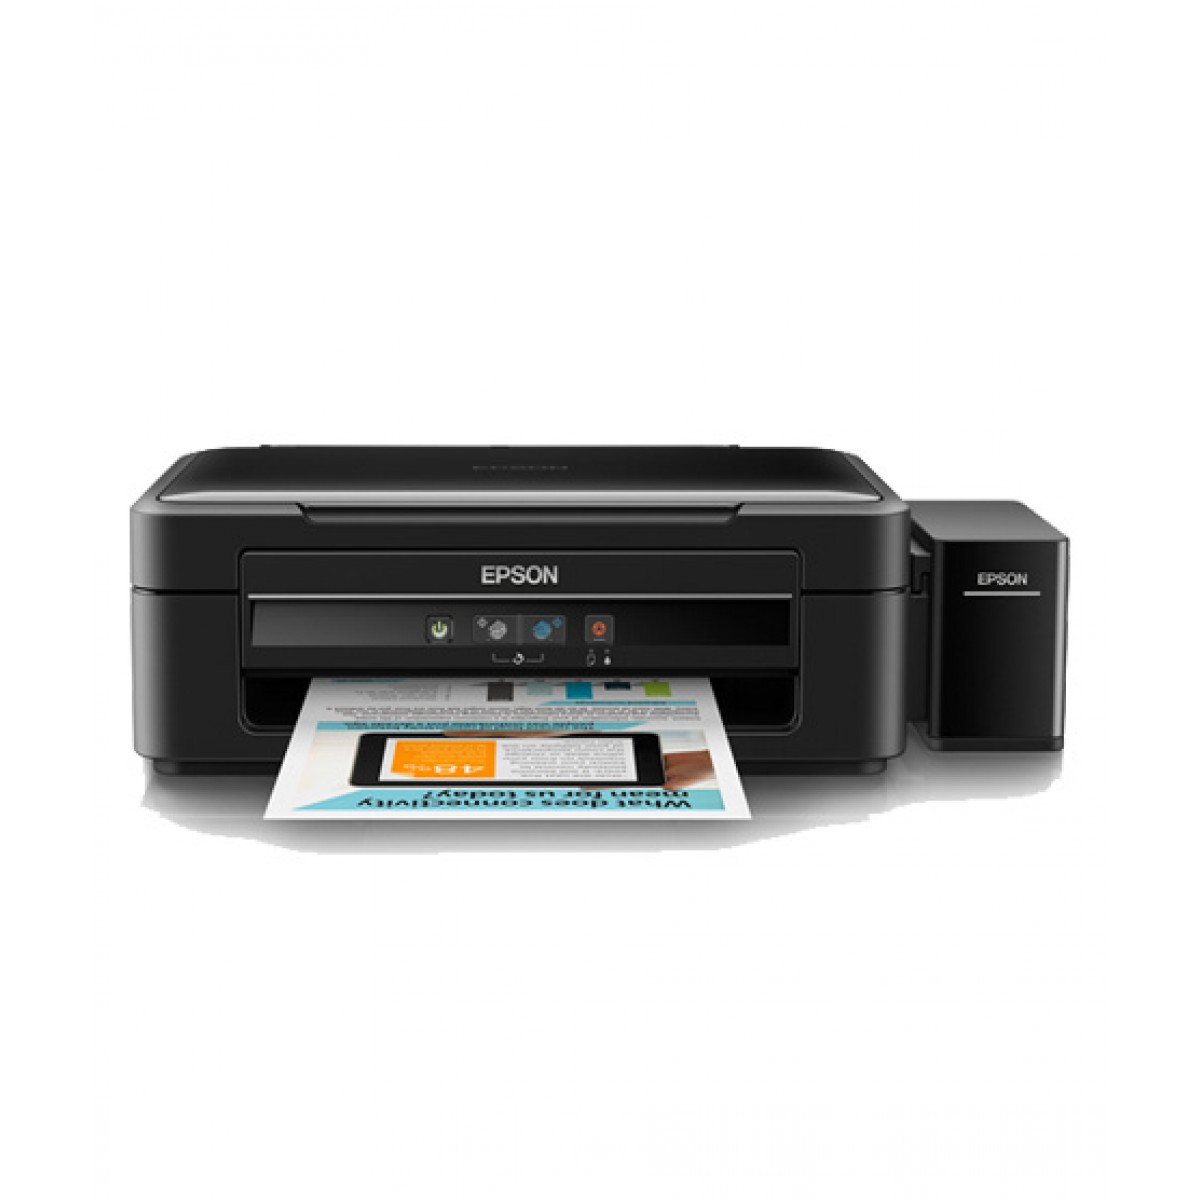 Epson All-in-One Inkjet Color Printer (L360) - Without Warranty